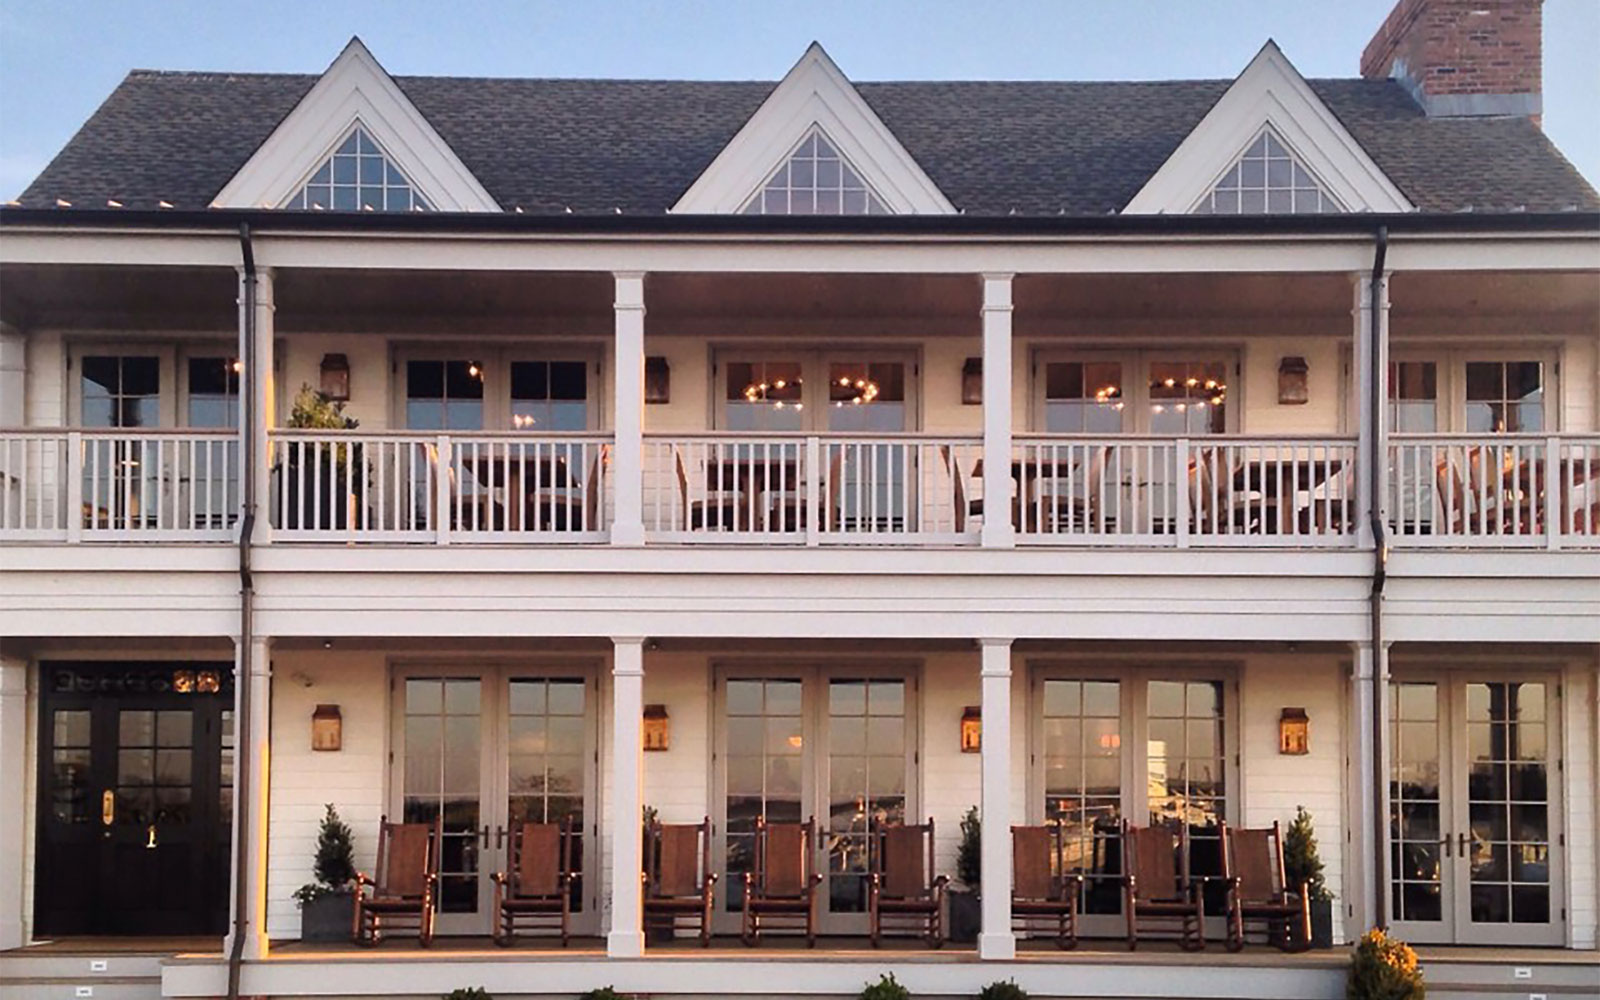 11 Intimate East Coast Inns to While Away Your Summer: Baron's Cove in Sag Harbor, New York